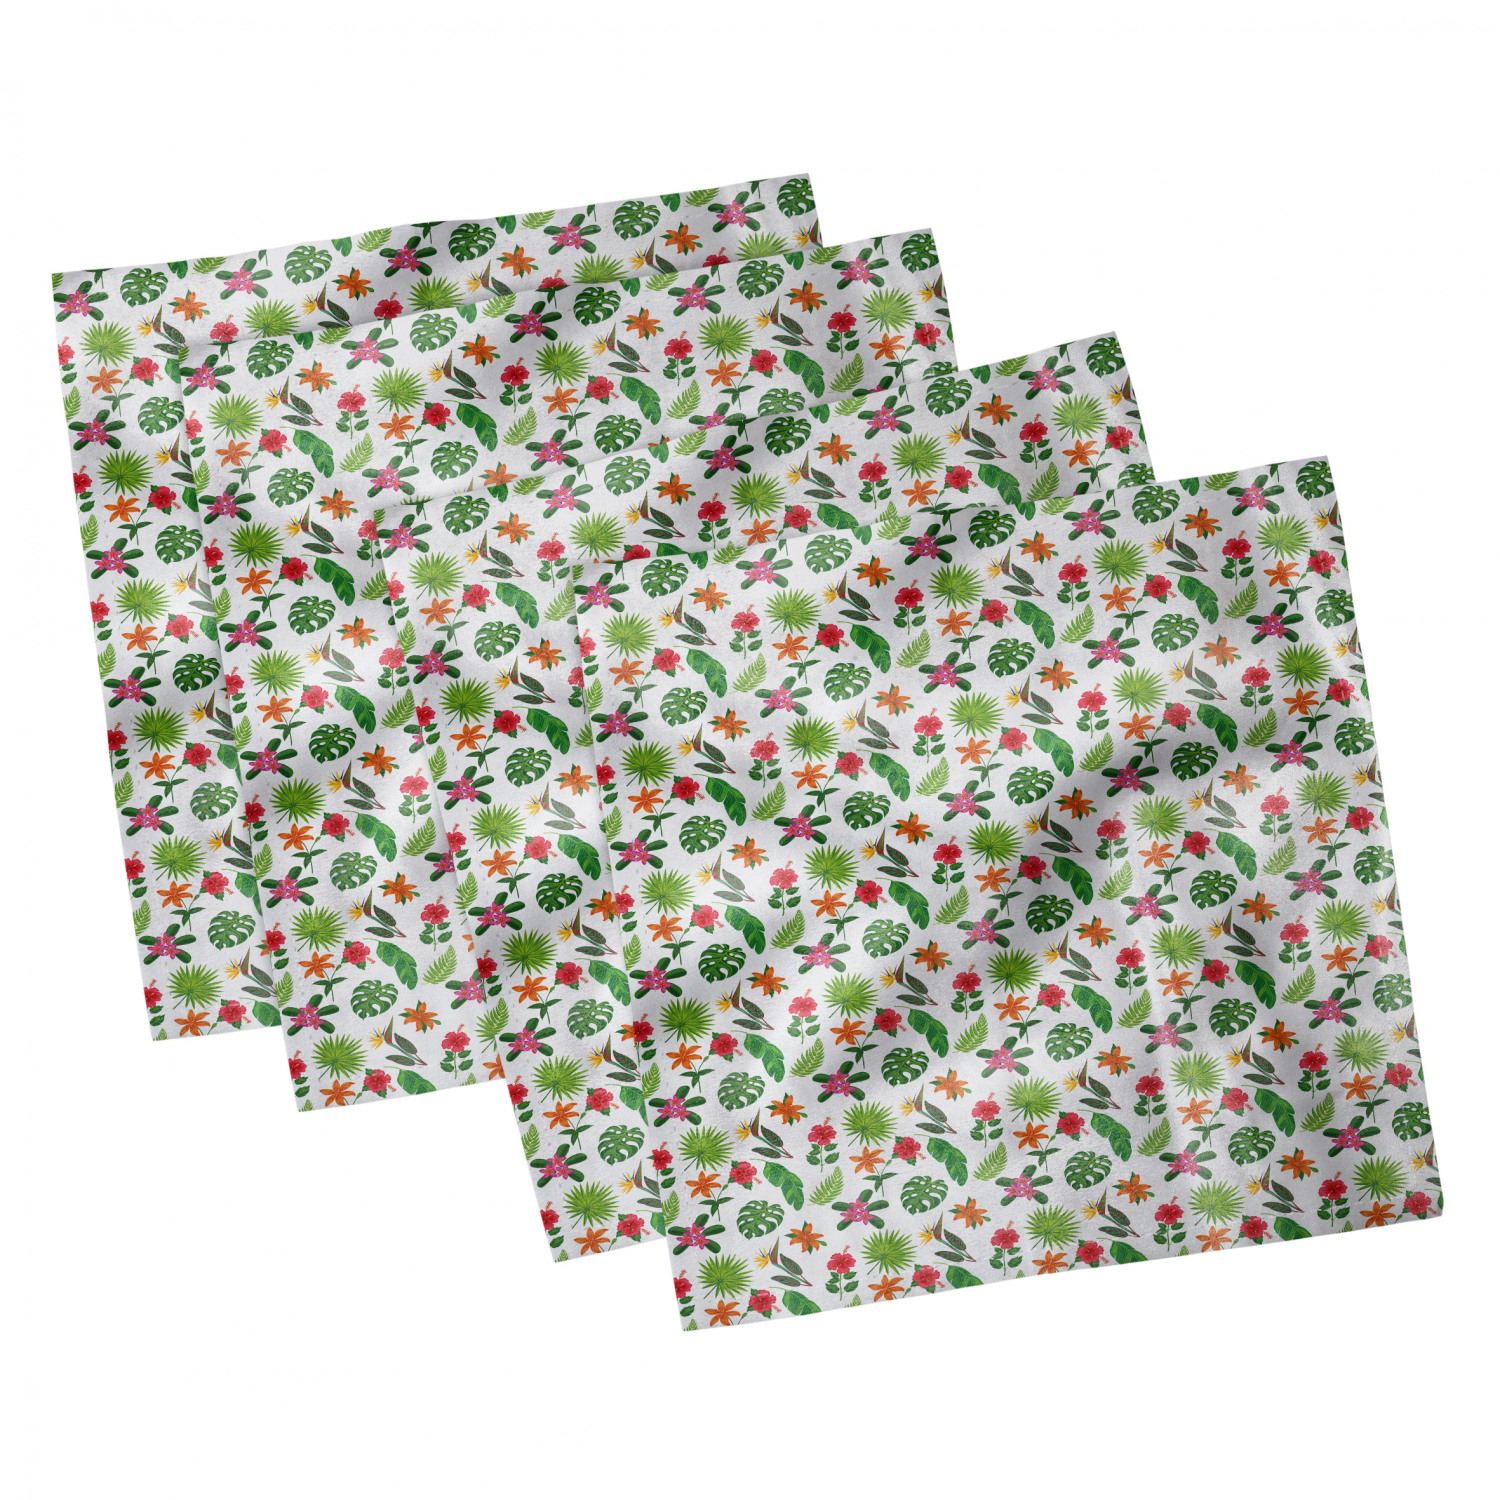 thumbnail 111 - Ambesonne-Leaves-Forest-Decorative-Satin-Napkins-Set-of-4-Party-Dinner-Fabric